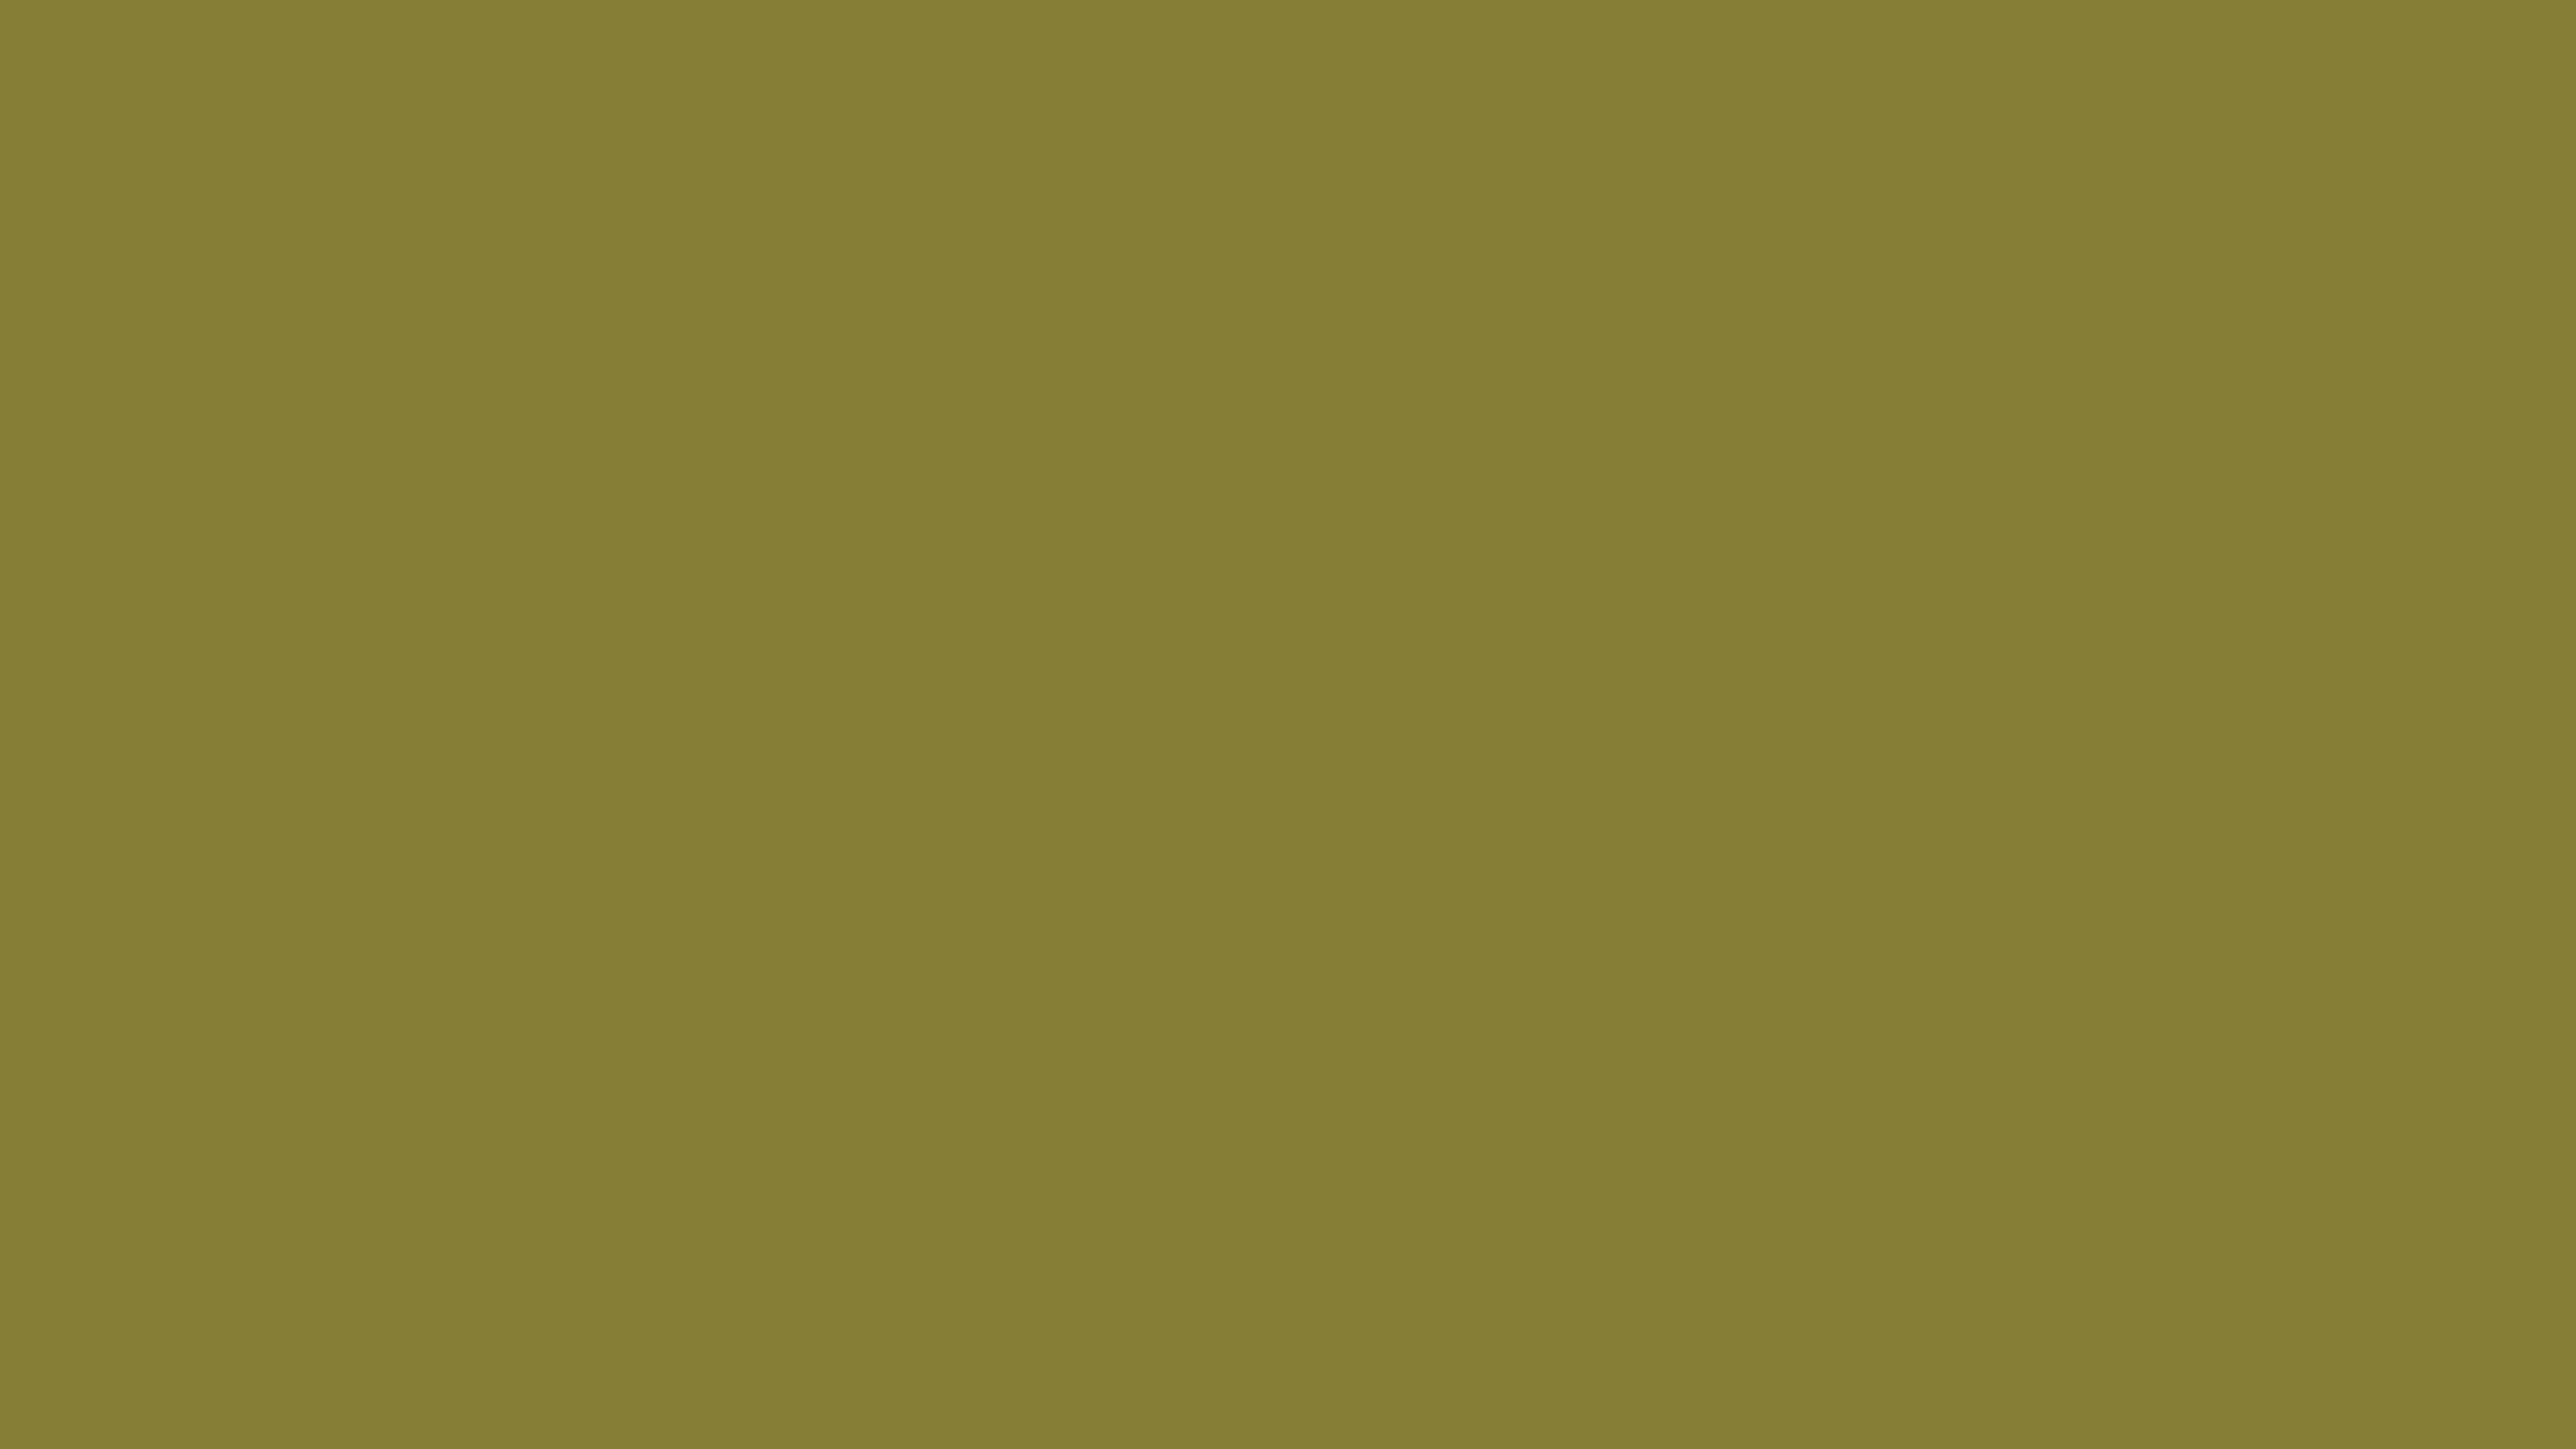 7680x4320 Old Moss Green Solid Color Background